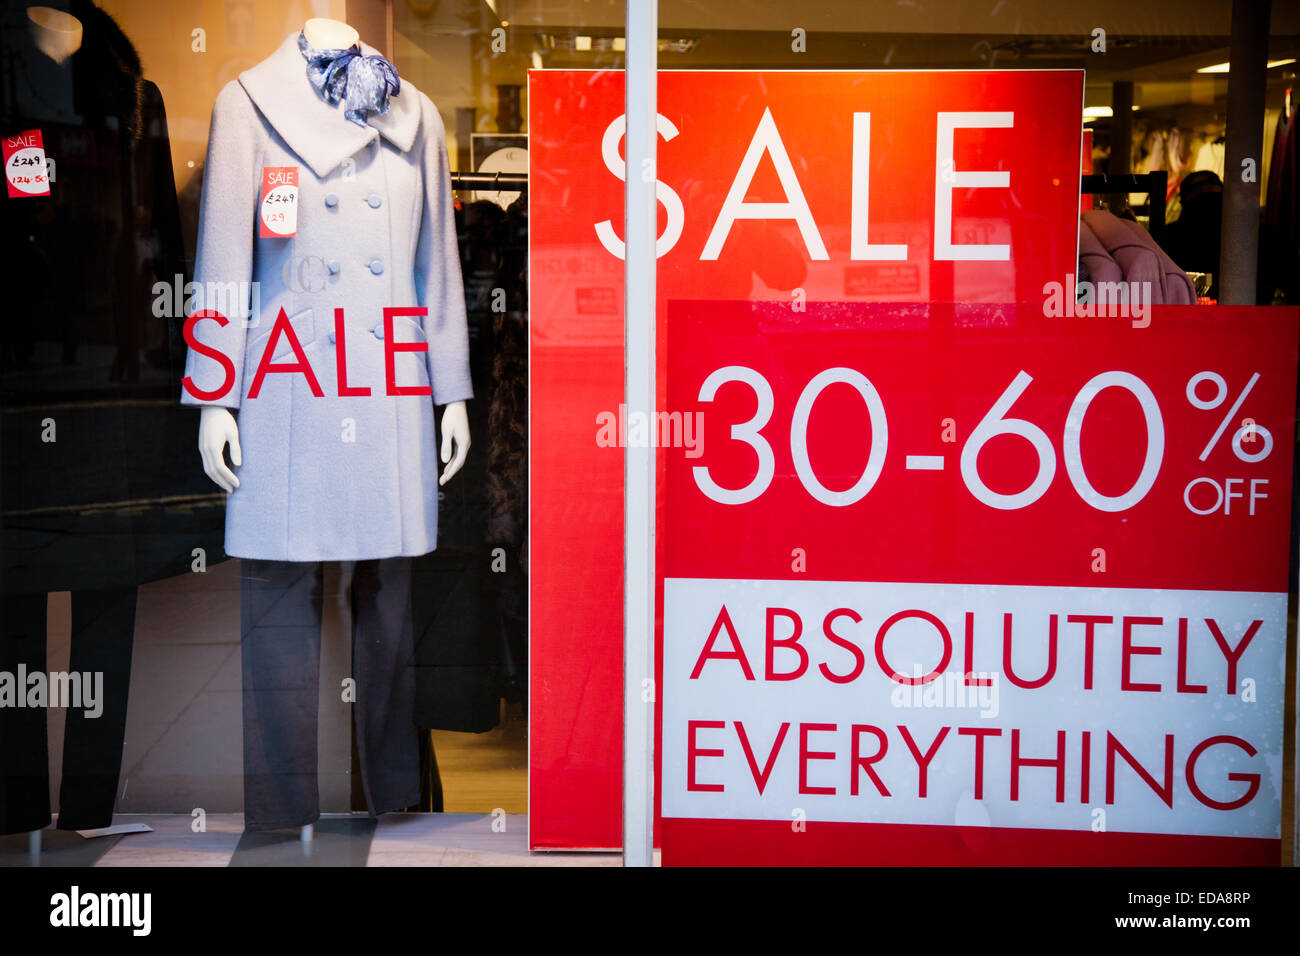 large sale sign posters in a shop window showing clothes